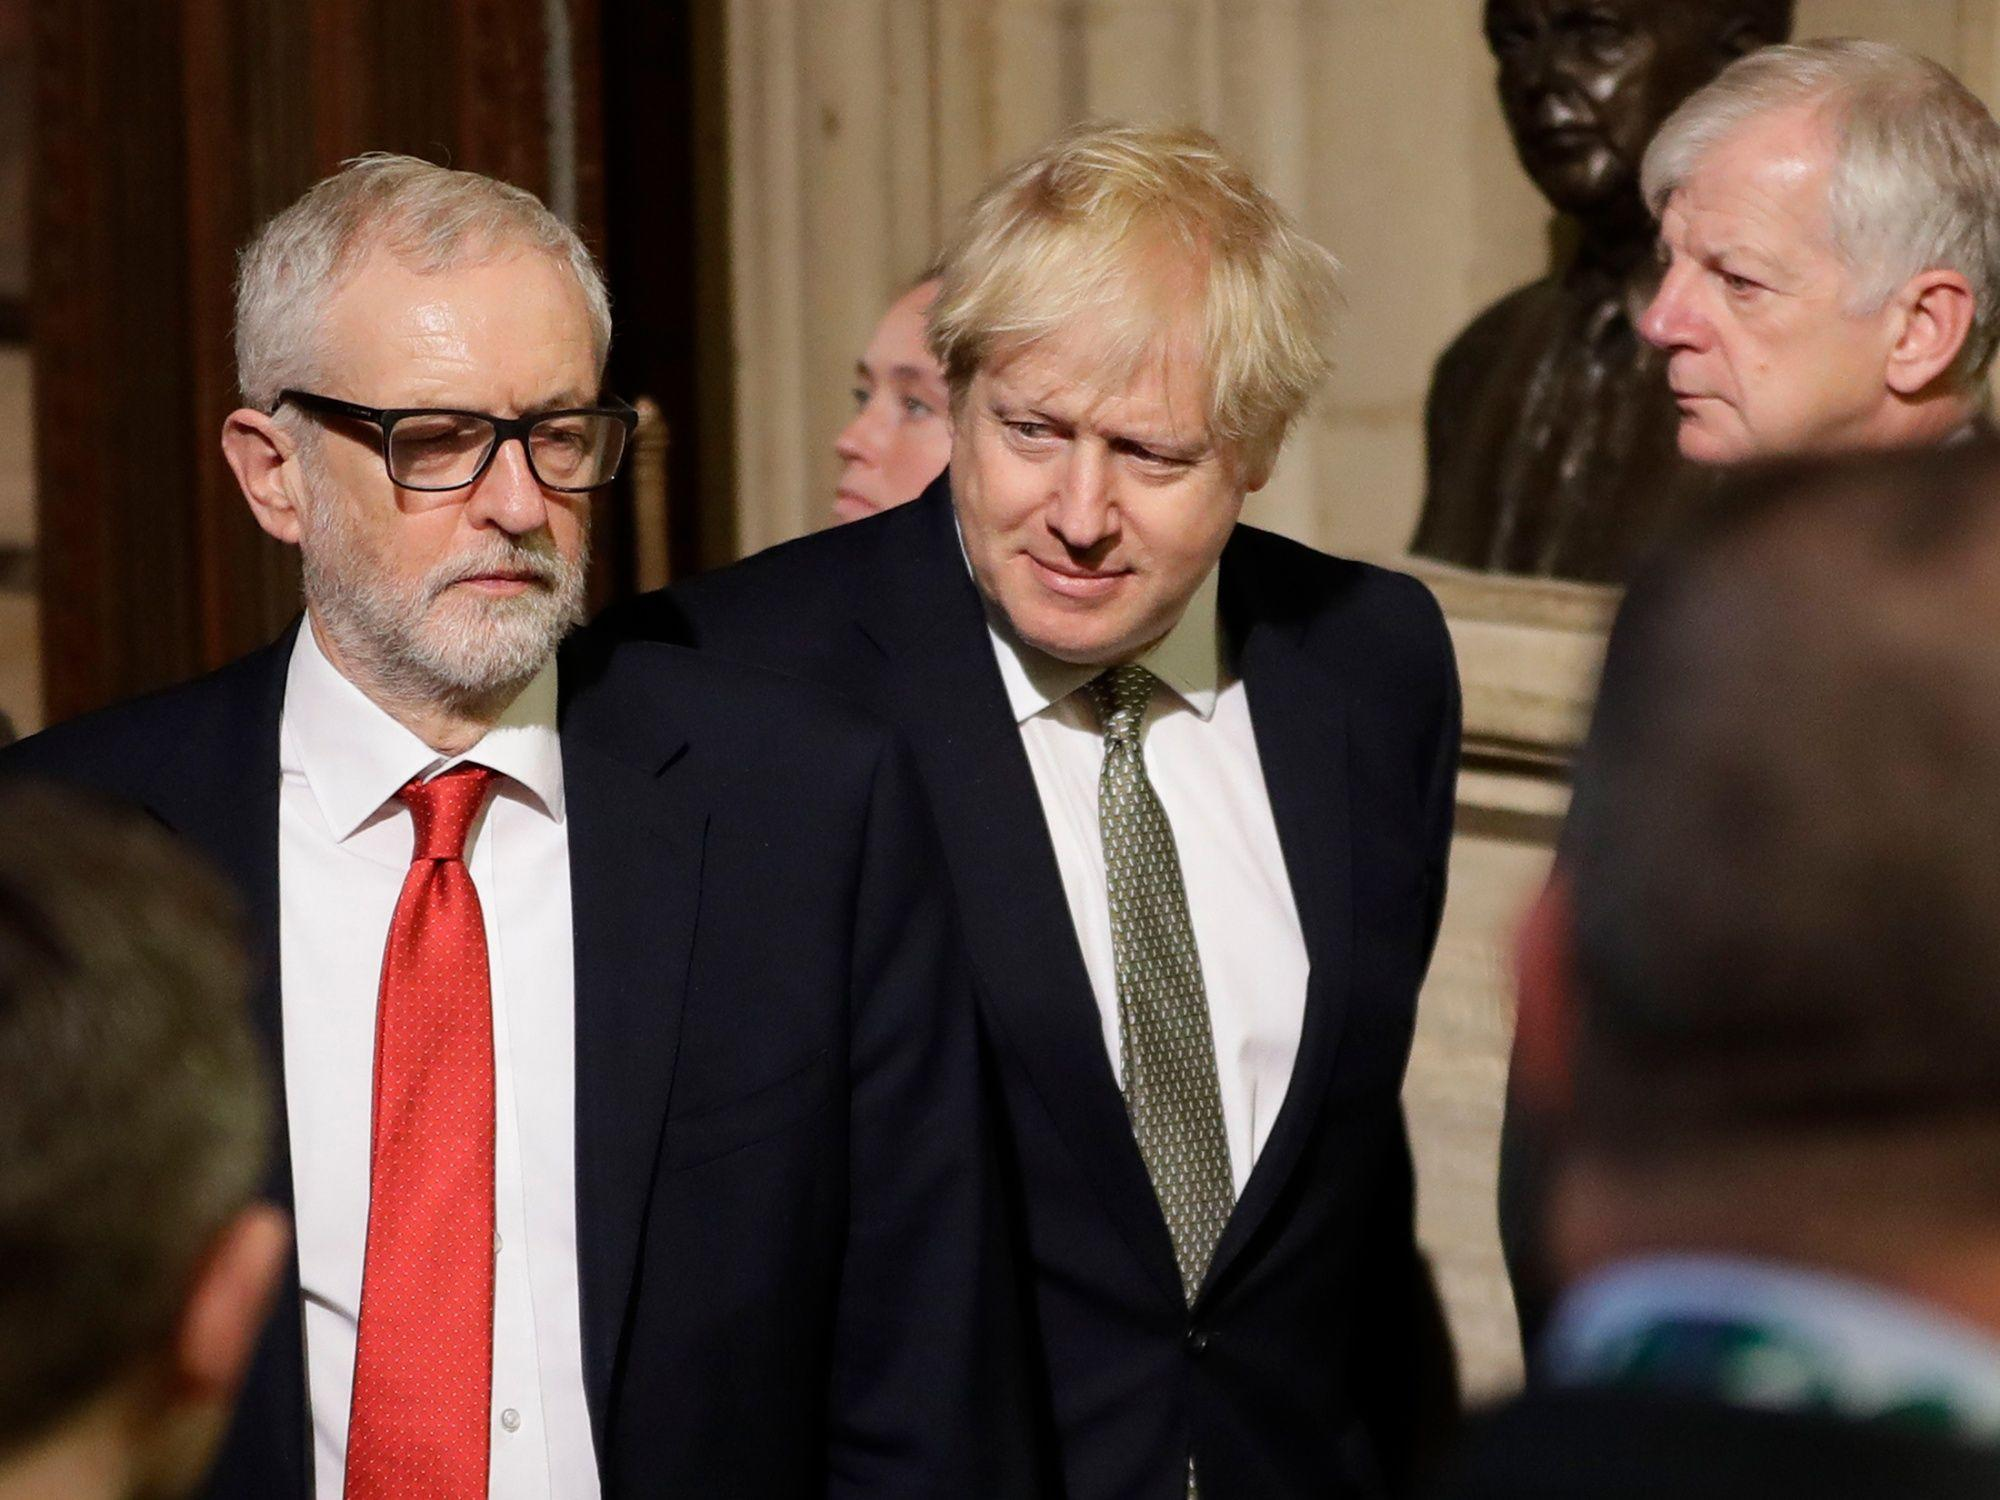 UK: MPs approve first stage of PM Johnson's Brexit legislation